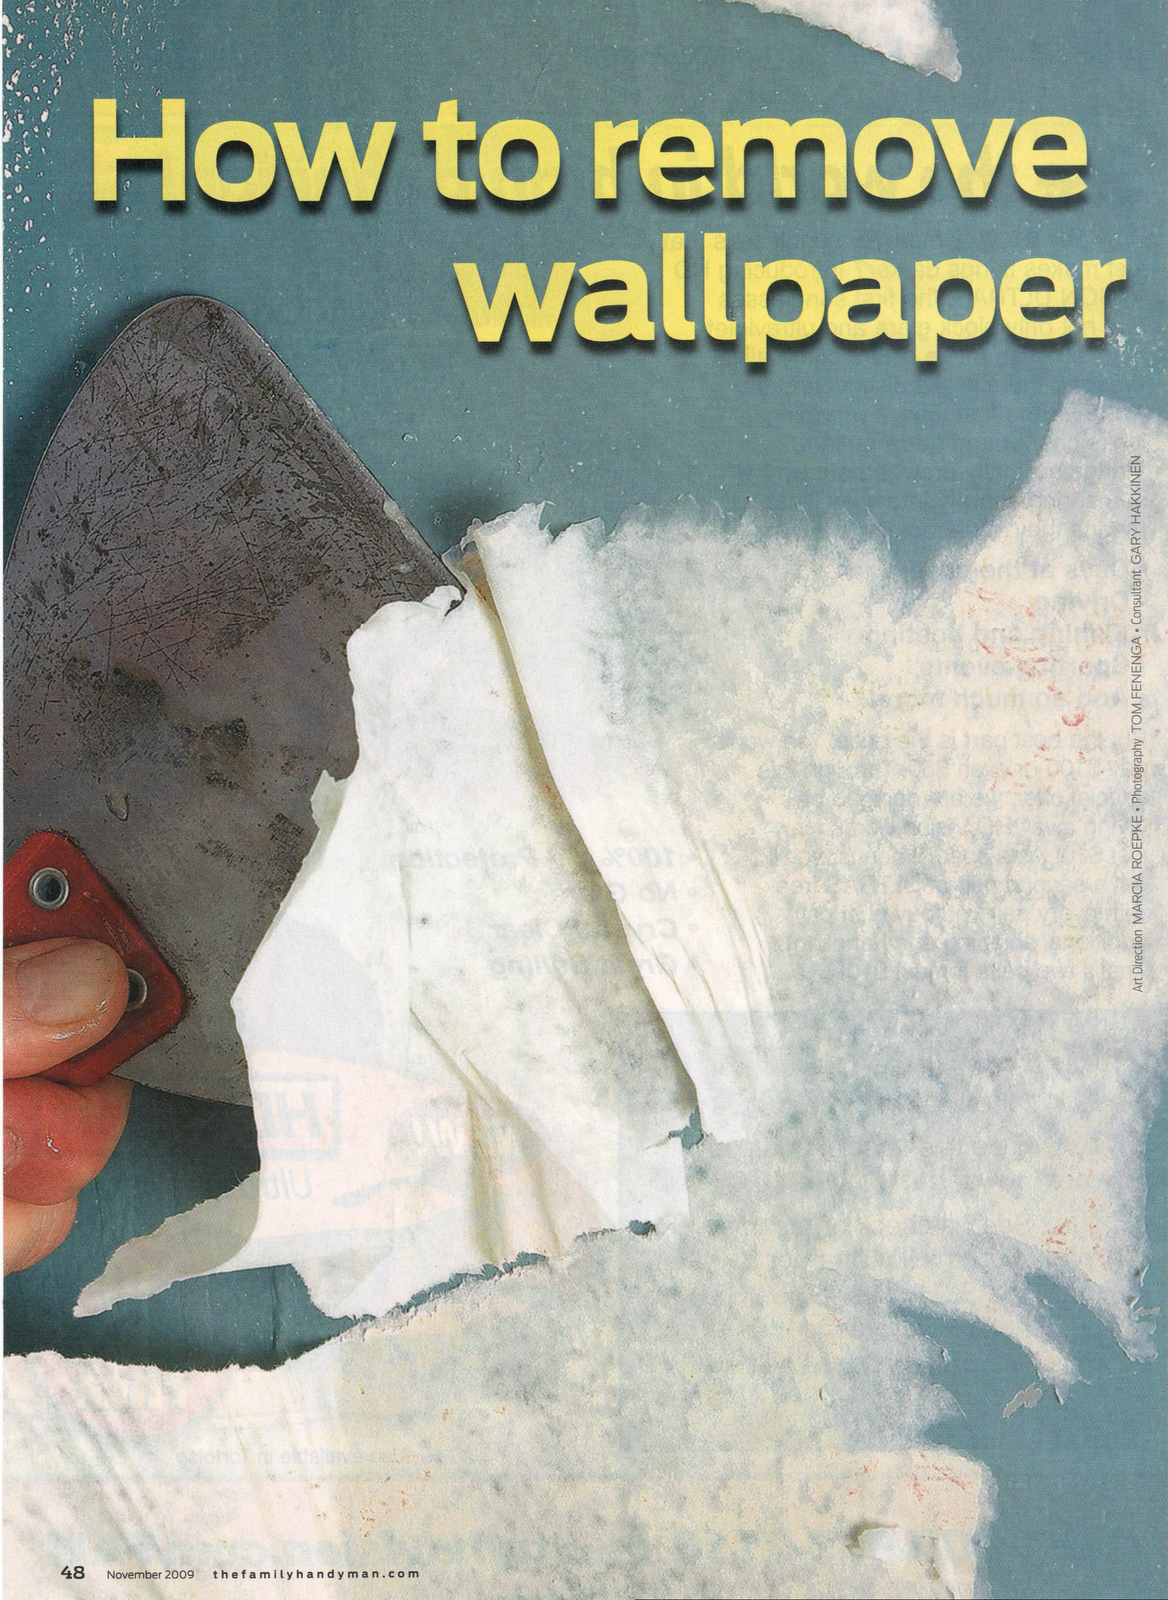 to Remove Wallpaper Remove Wallpaper from Drywall remove wallpaper 1168x1600